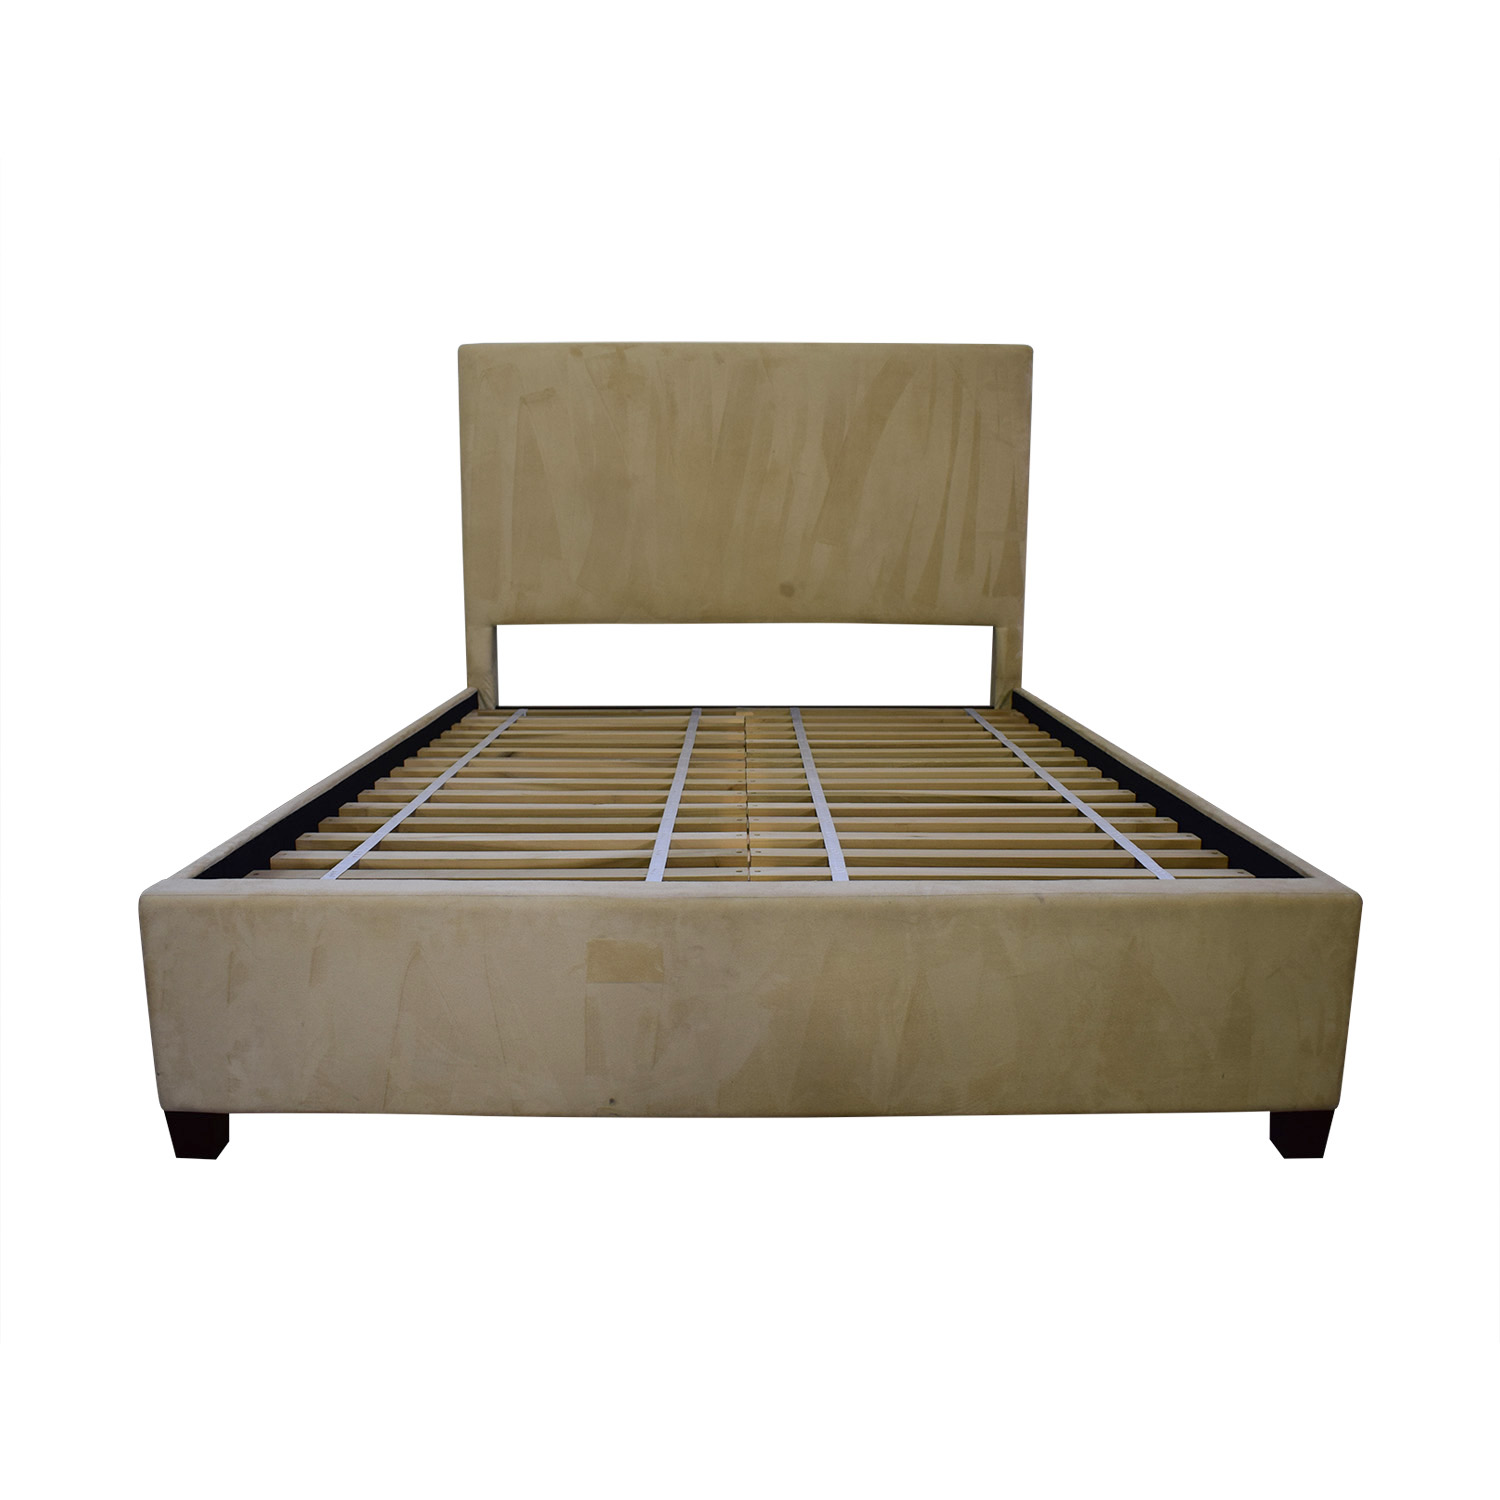 Pottery Barn Pottery Barn Beige Twill Full Platform Bed Frame used